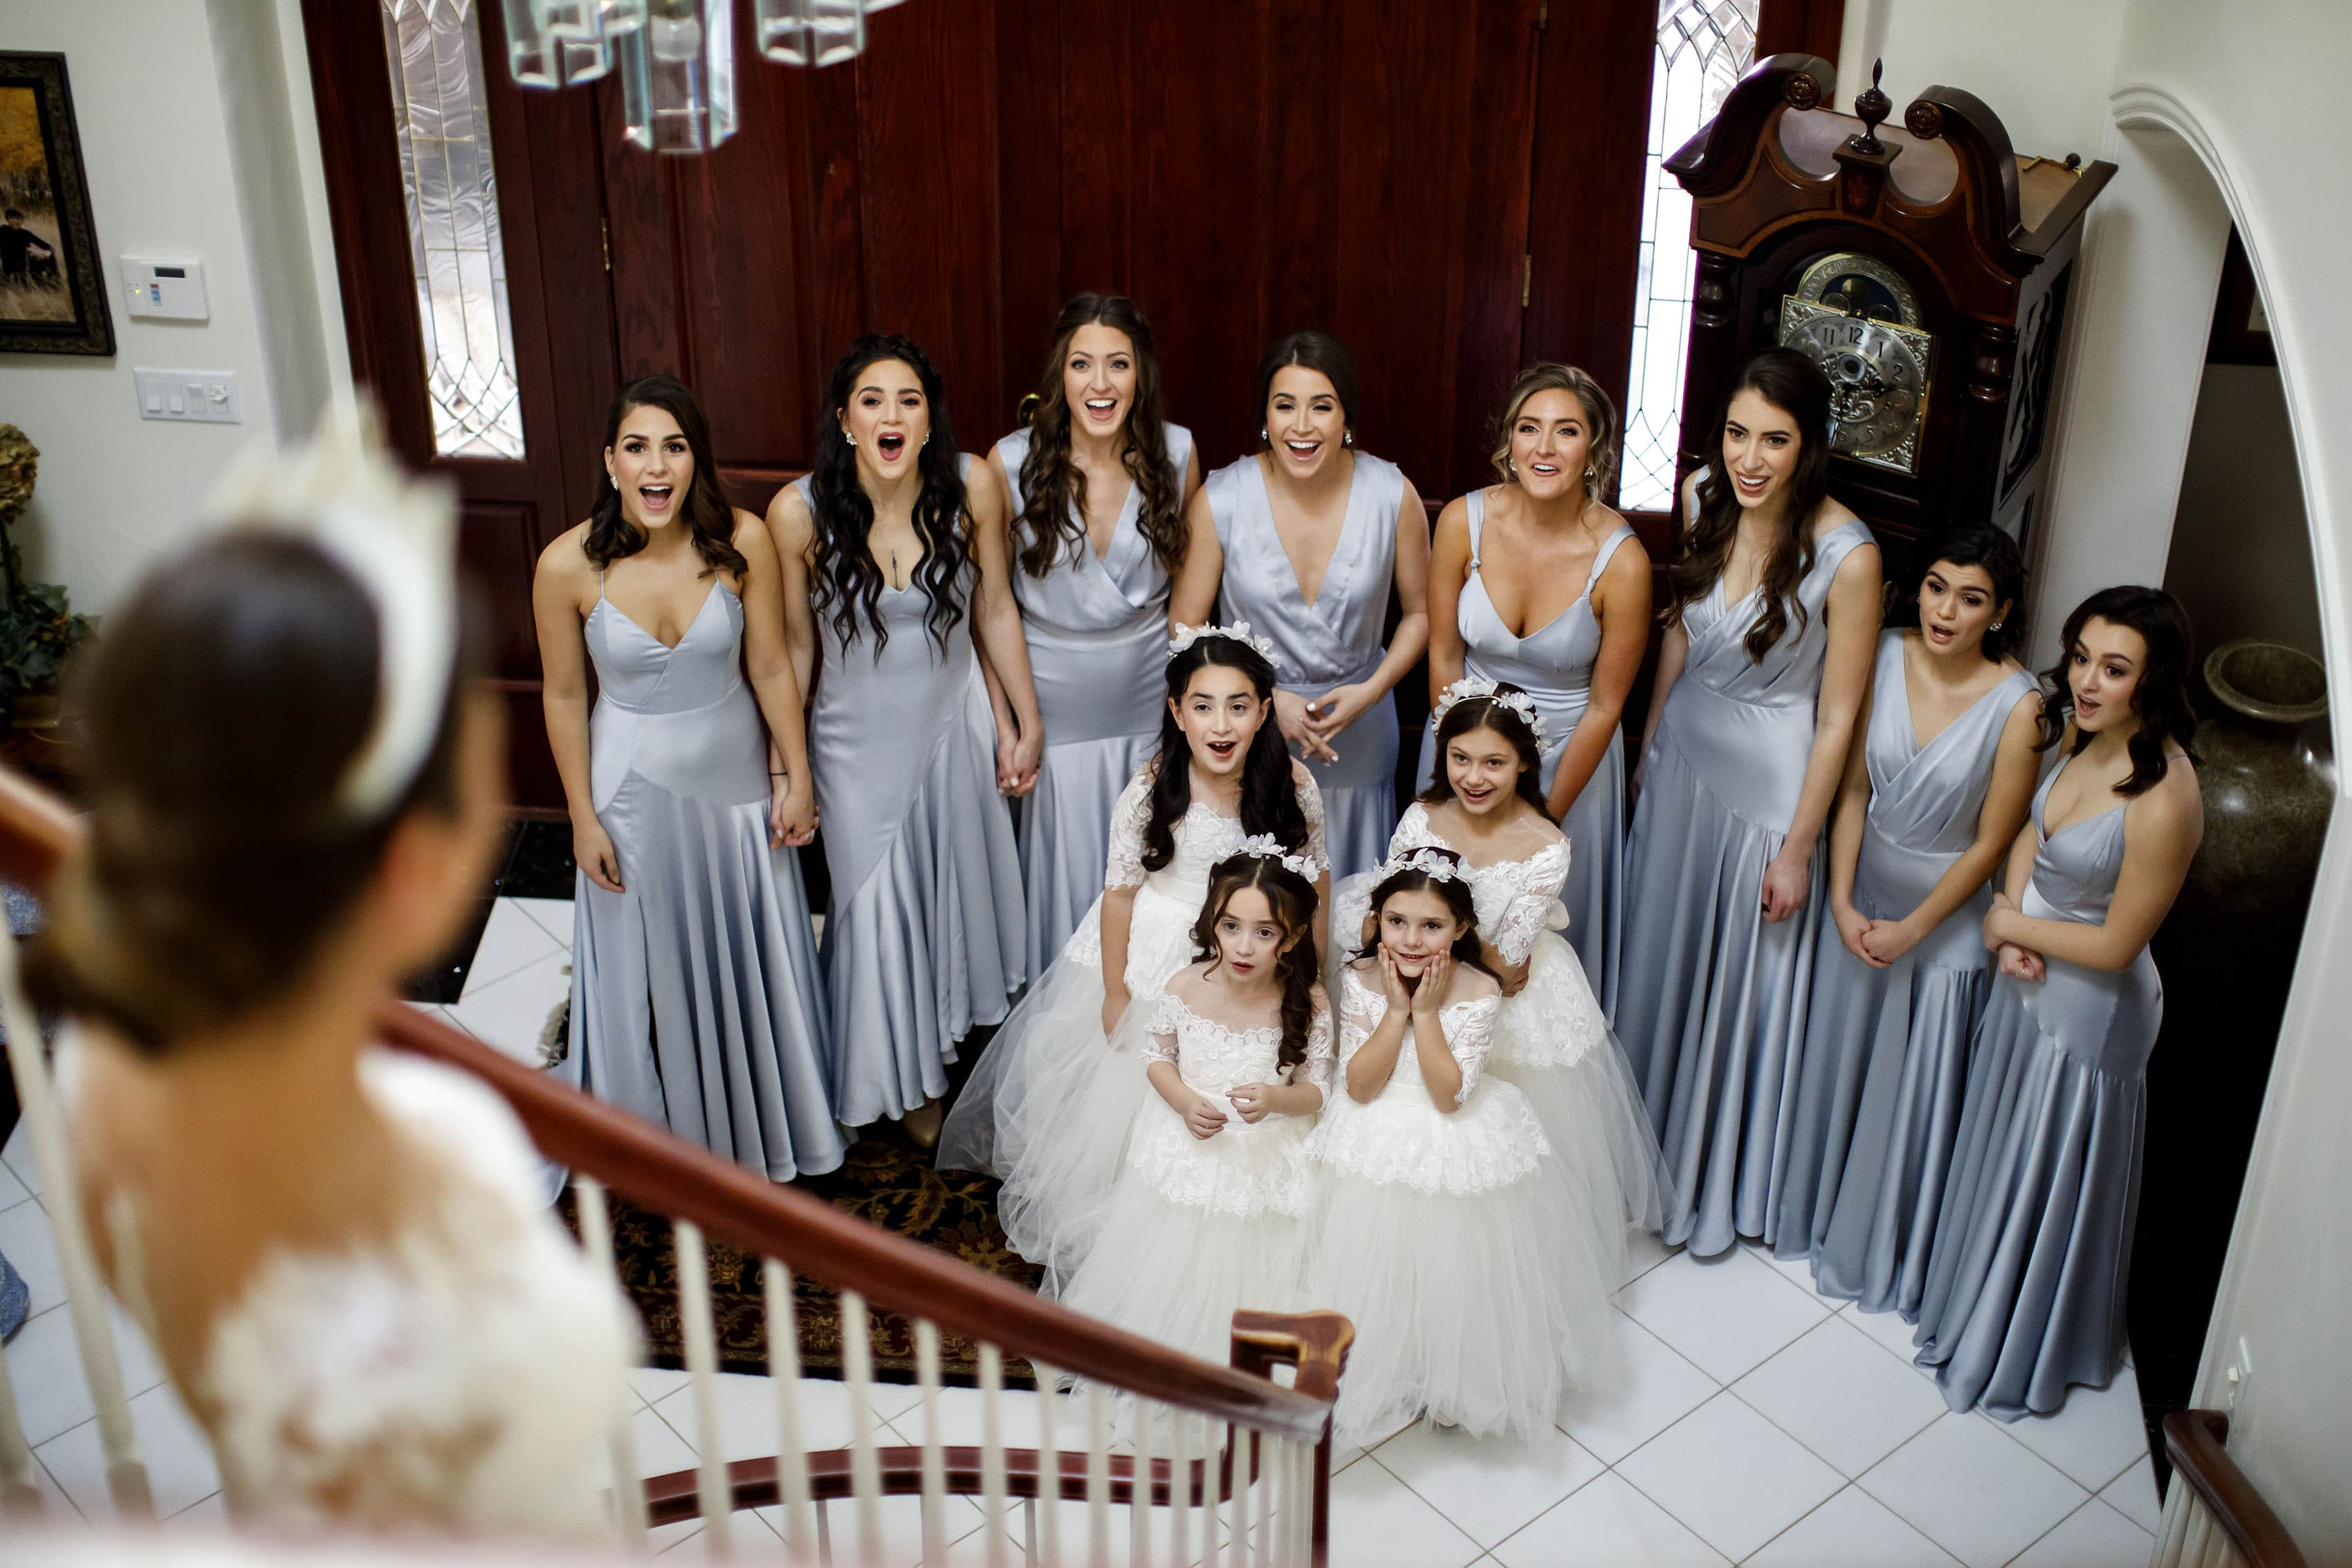 Ioanna's bridesmaids react as she walks down the grand staircase on her wedding day